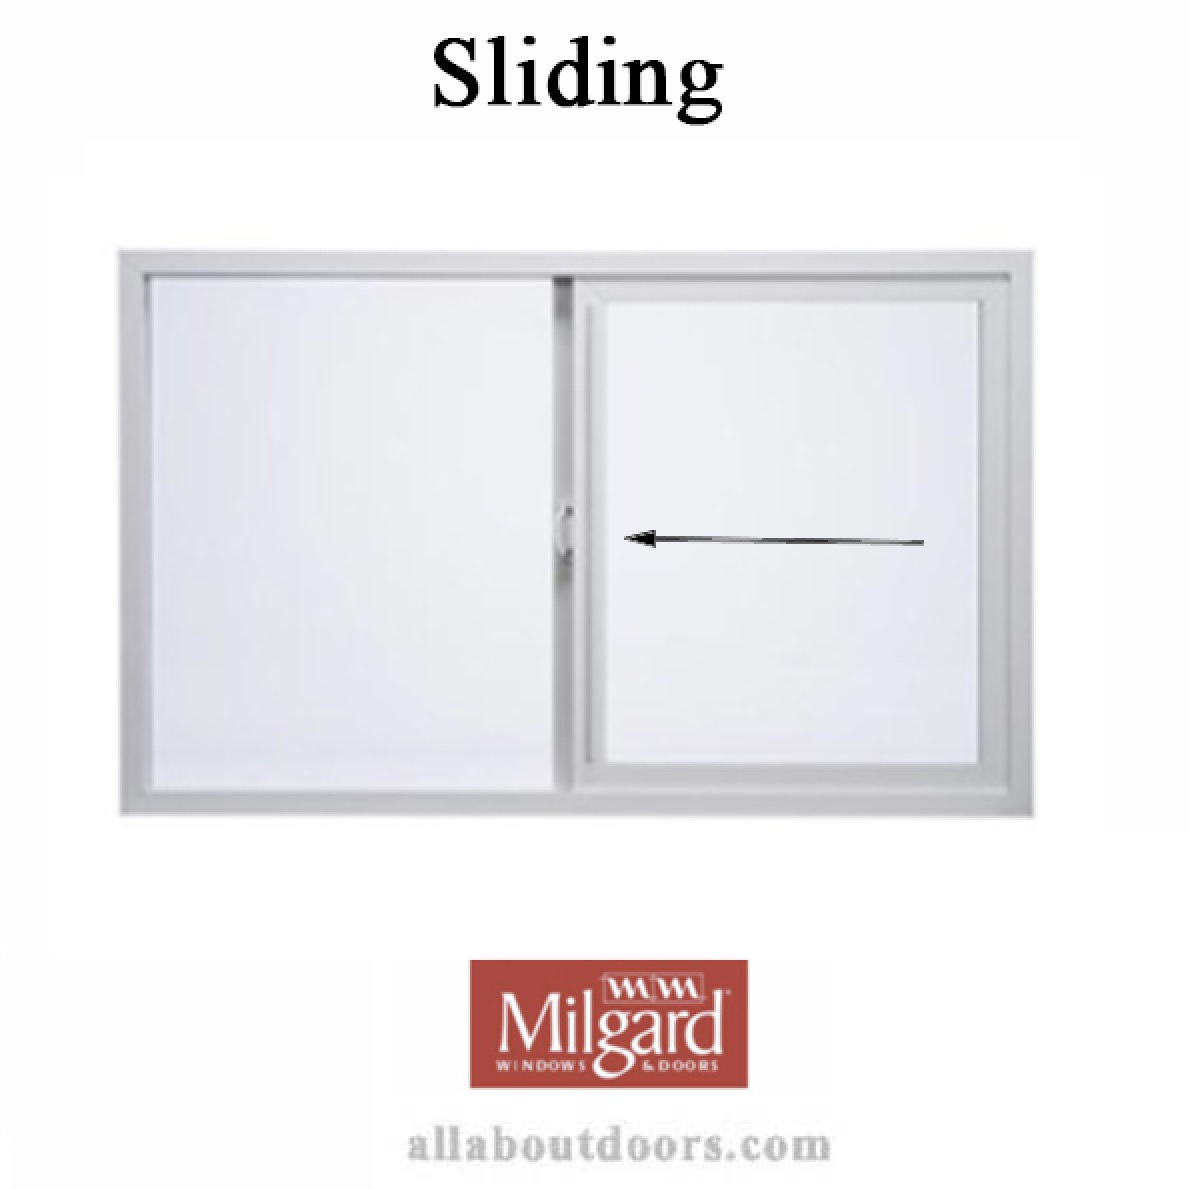 Milgard Sliding Window Hardware